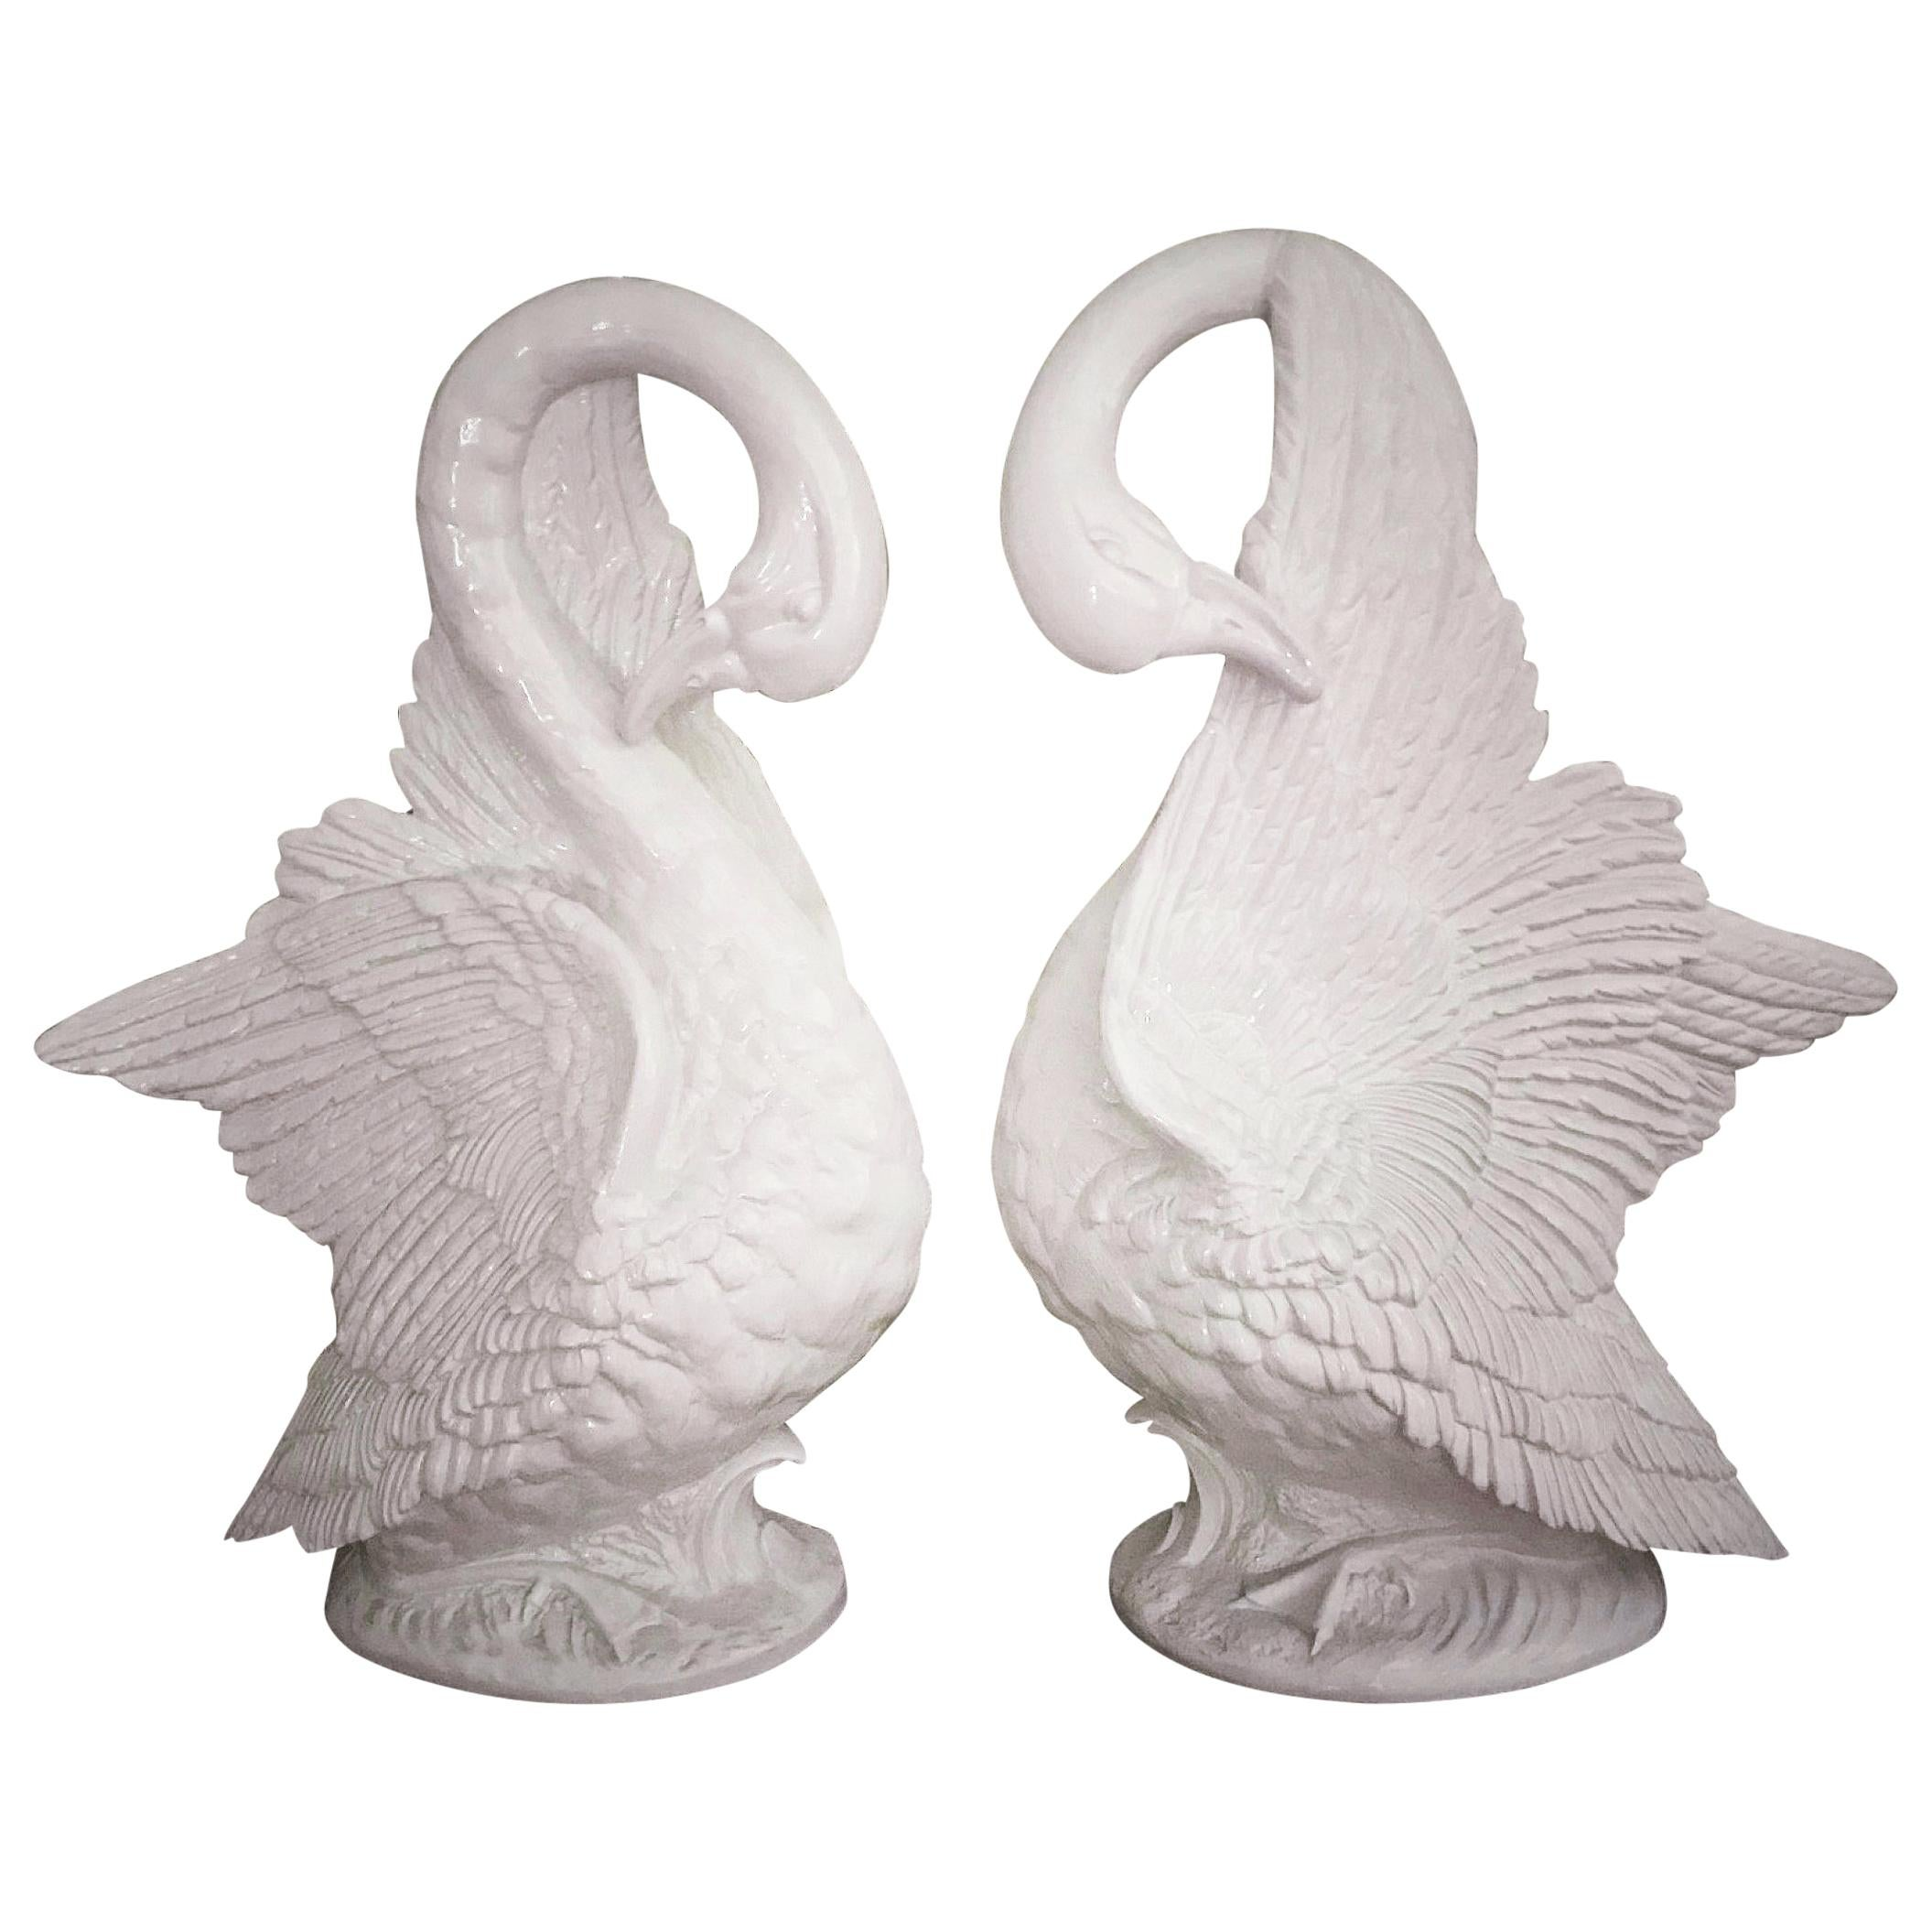 Life-Sized Pair of Swans Hollywood Regency Italian Ceramic Sculptures